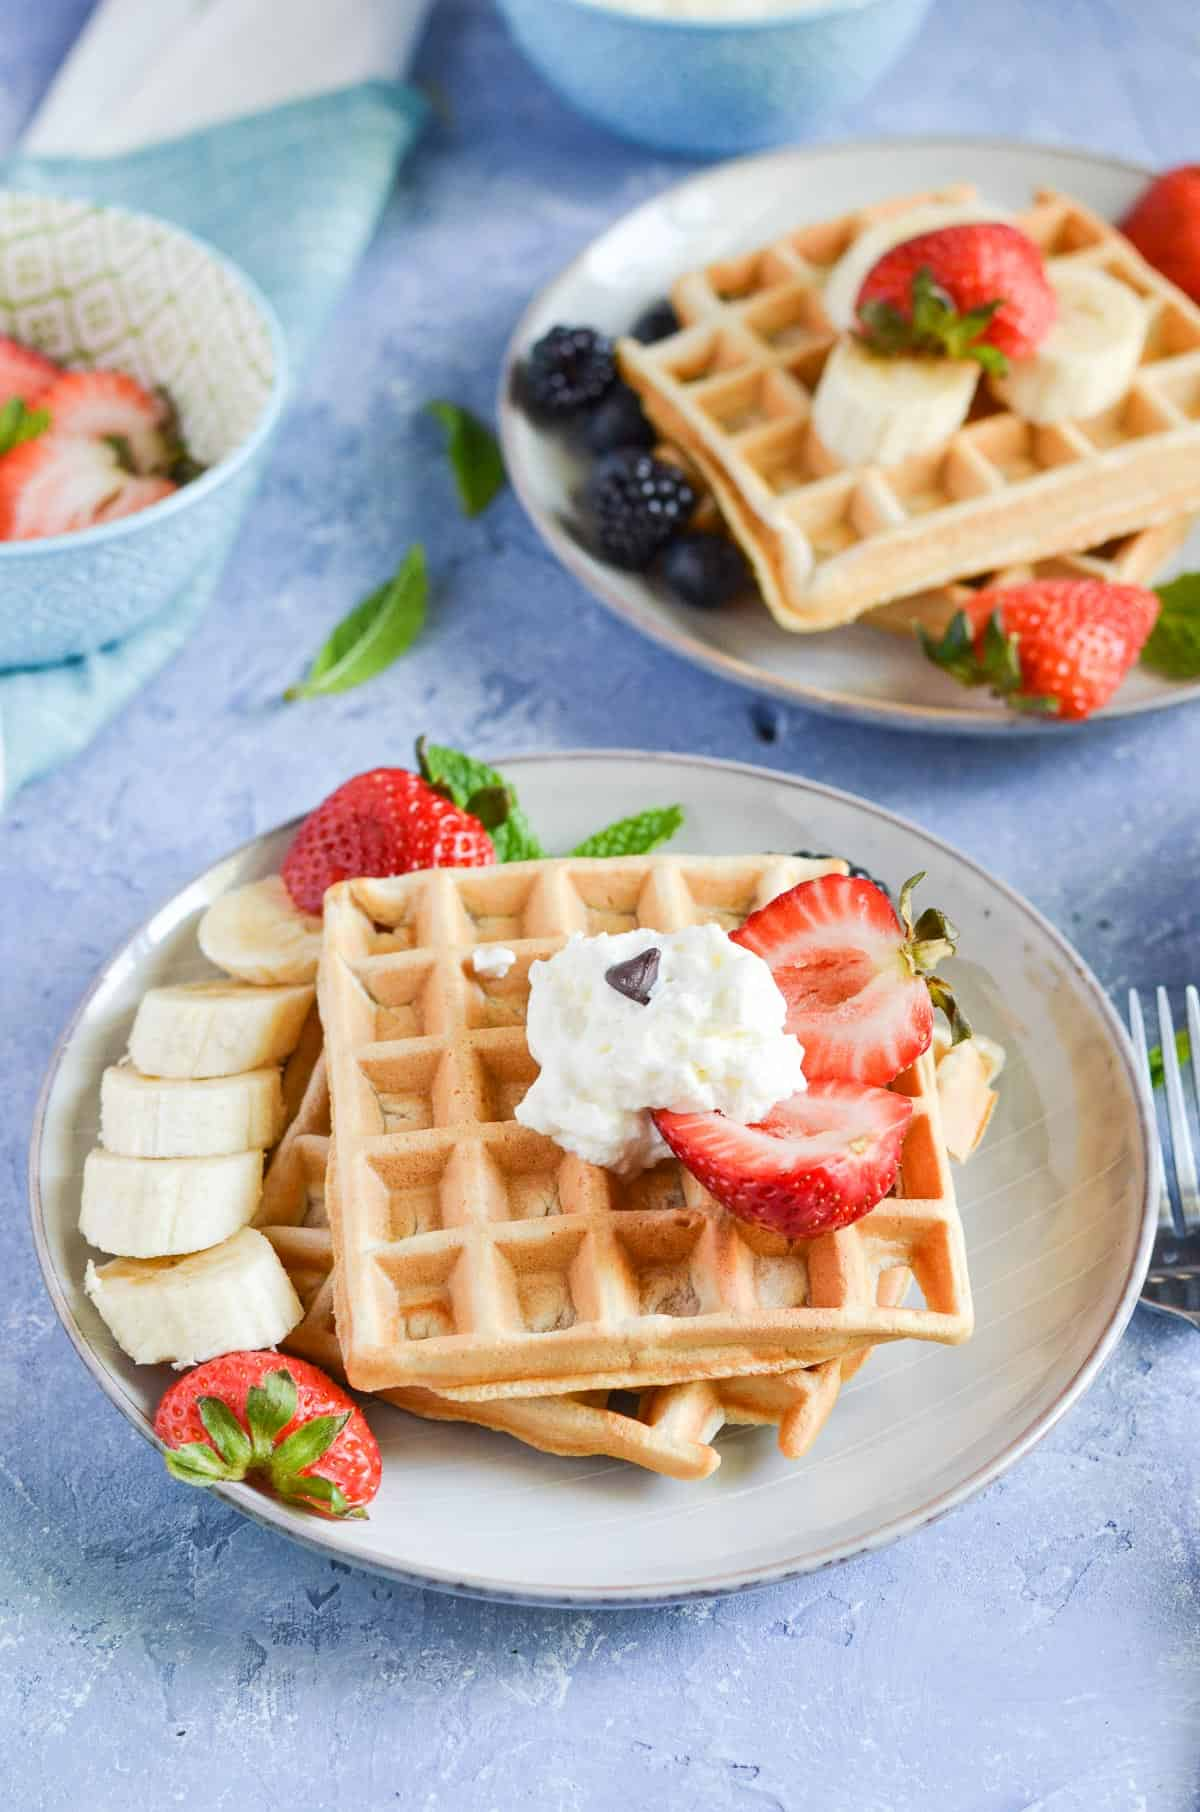 twp plates shown with waffles. served with banana, maple syrup, cream and berries.